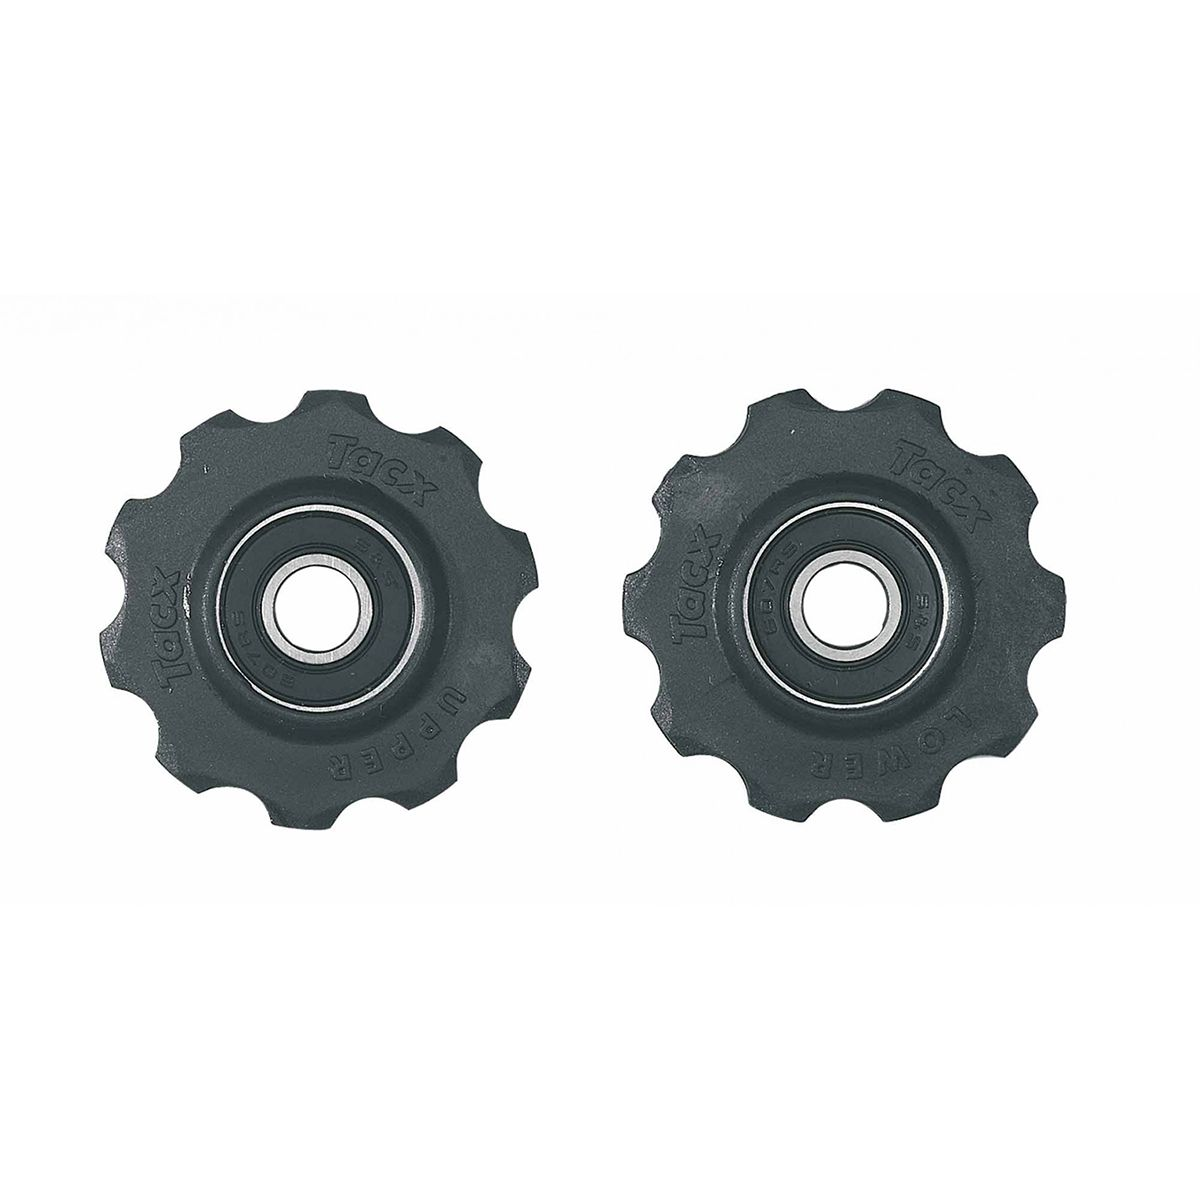 T4000 10-tooth derailleur wheels